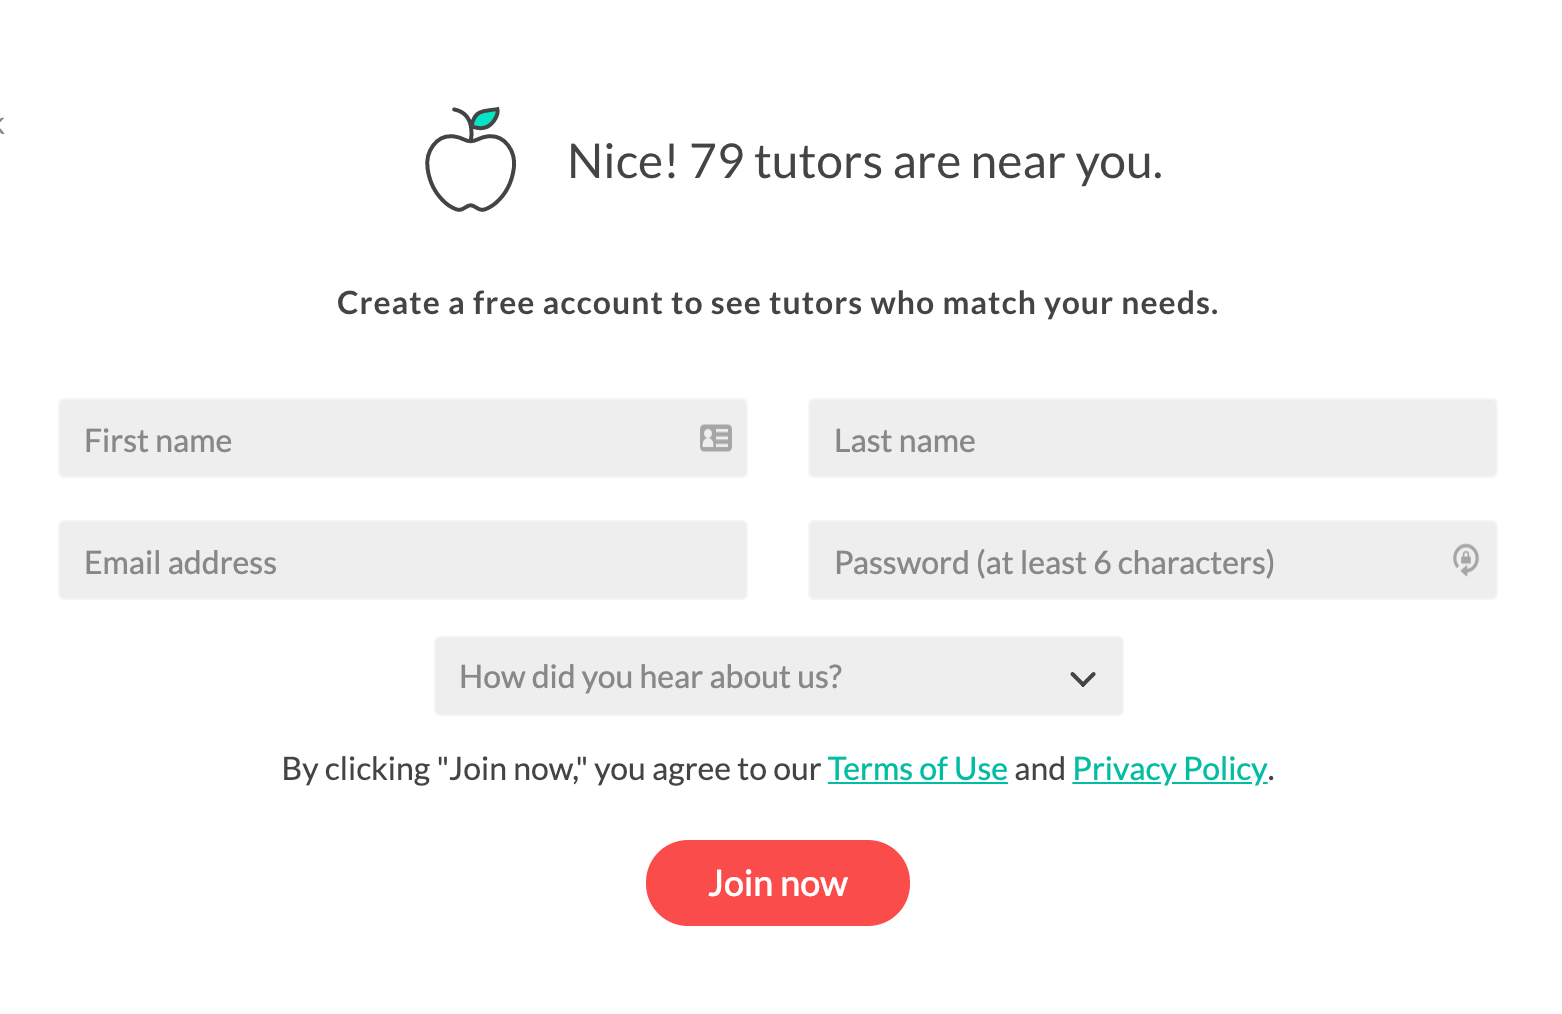 Everything You Need to Know About the Care.com Tutor Service: Create account